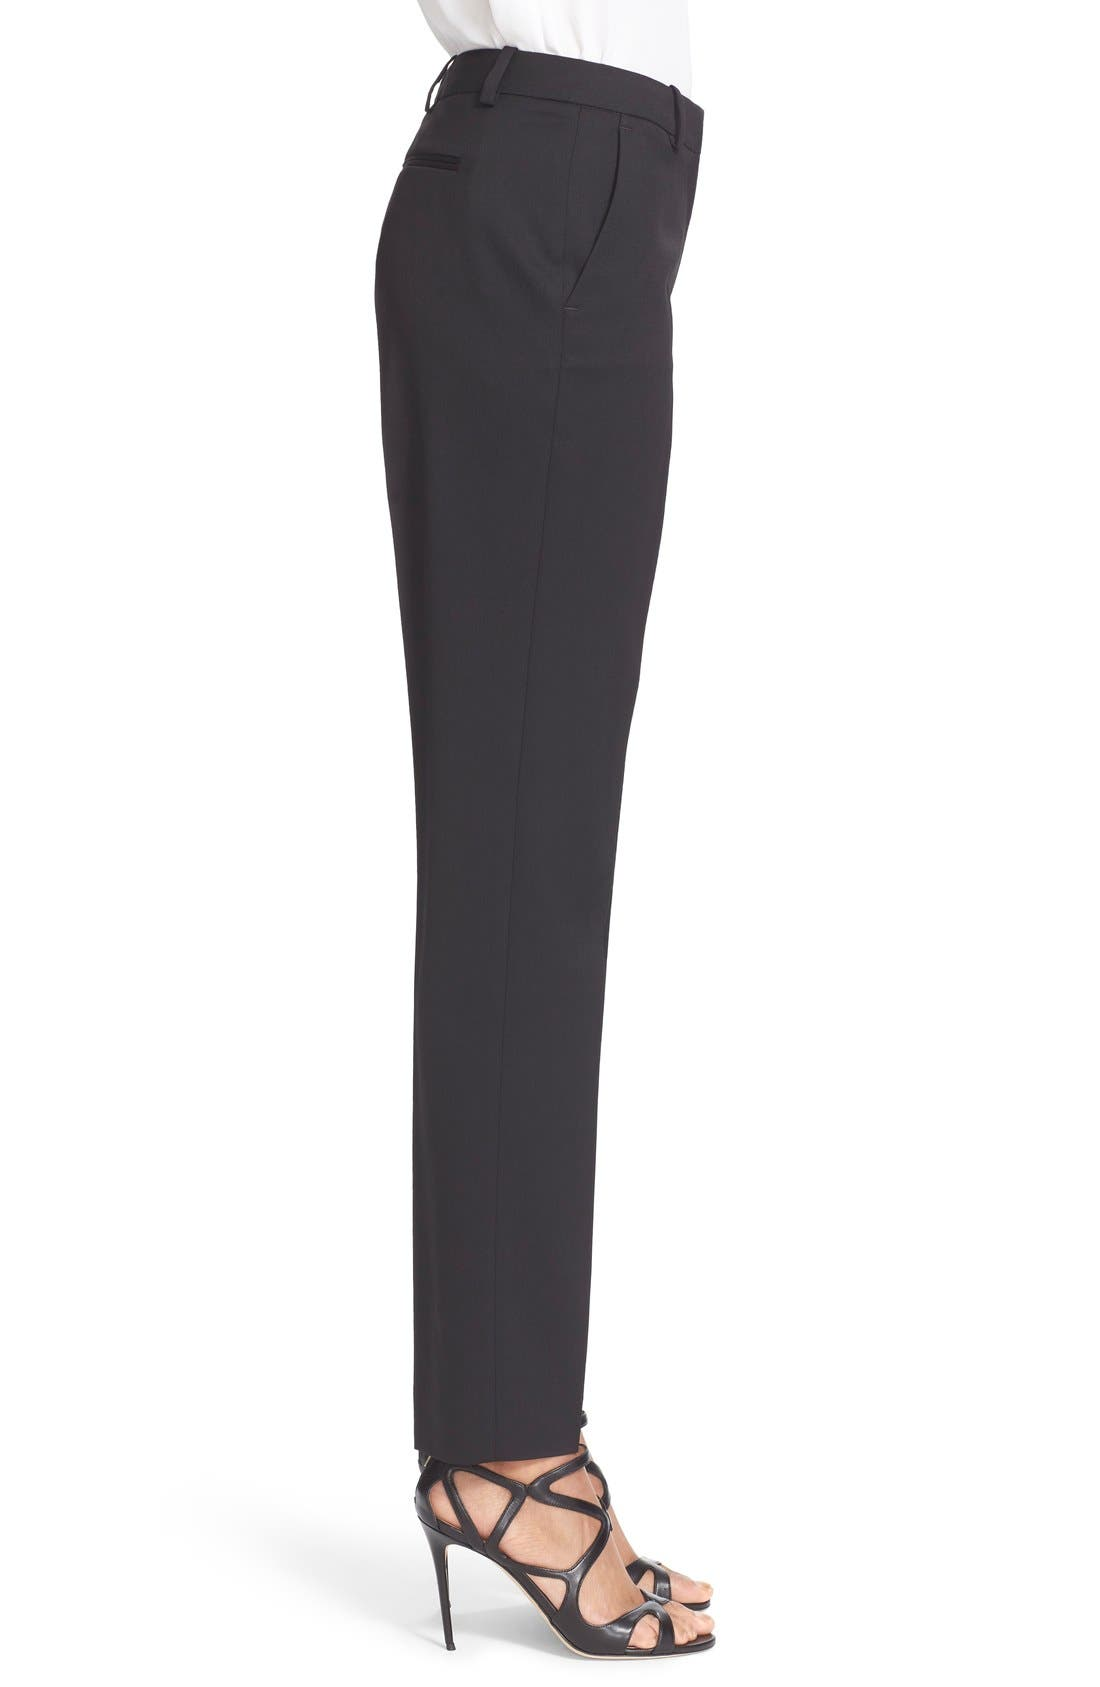 'Timeless' Stretch Wool Trousers,                             Alternate thumbnail 5, color,                             001